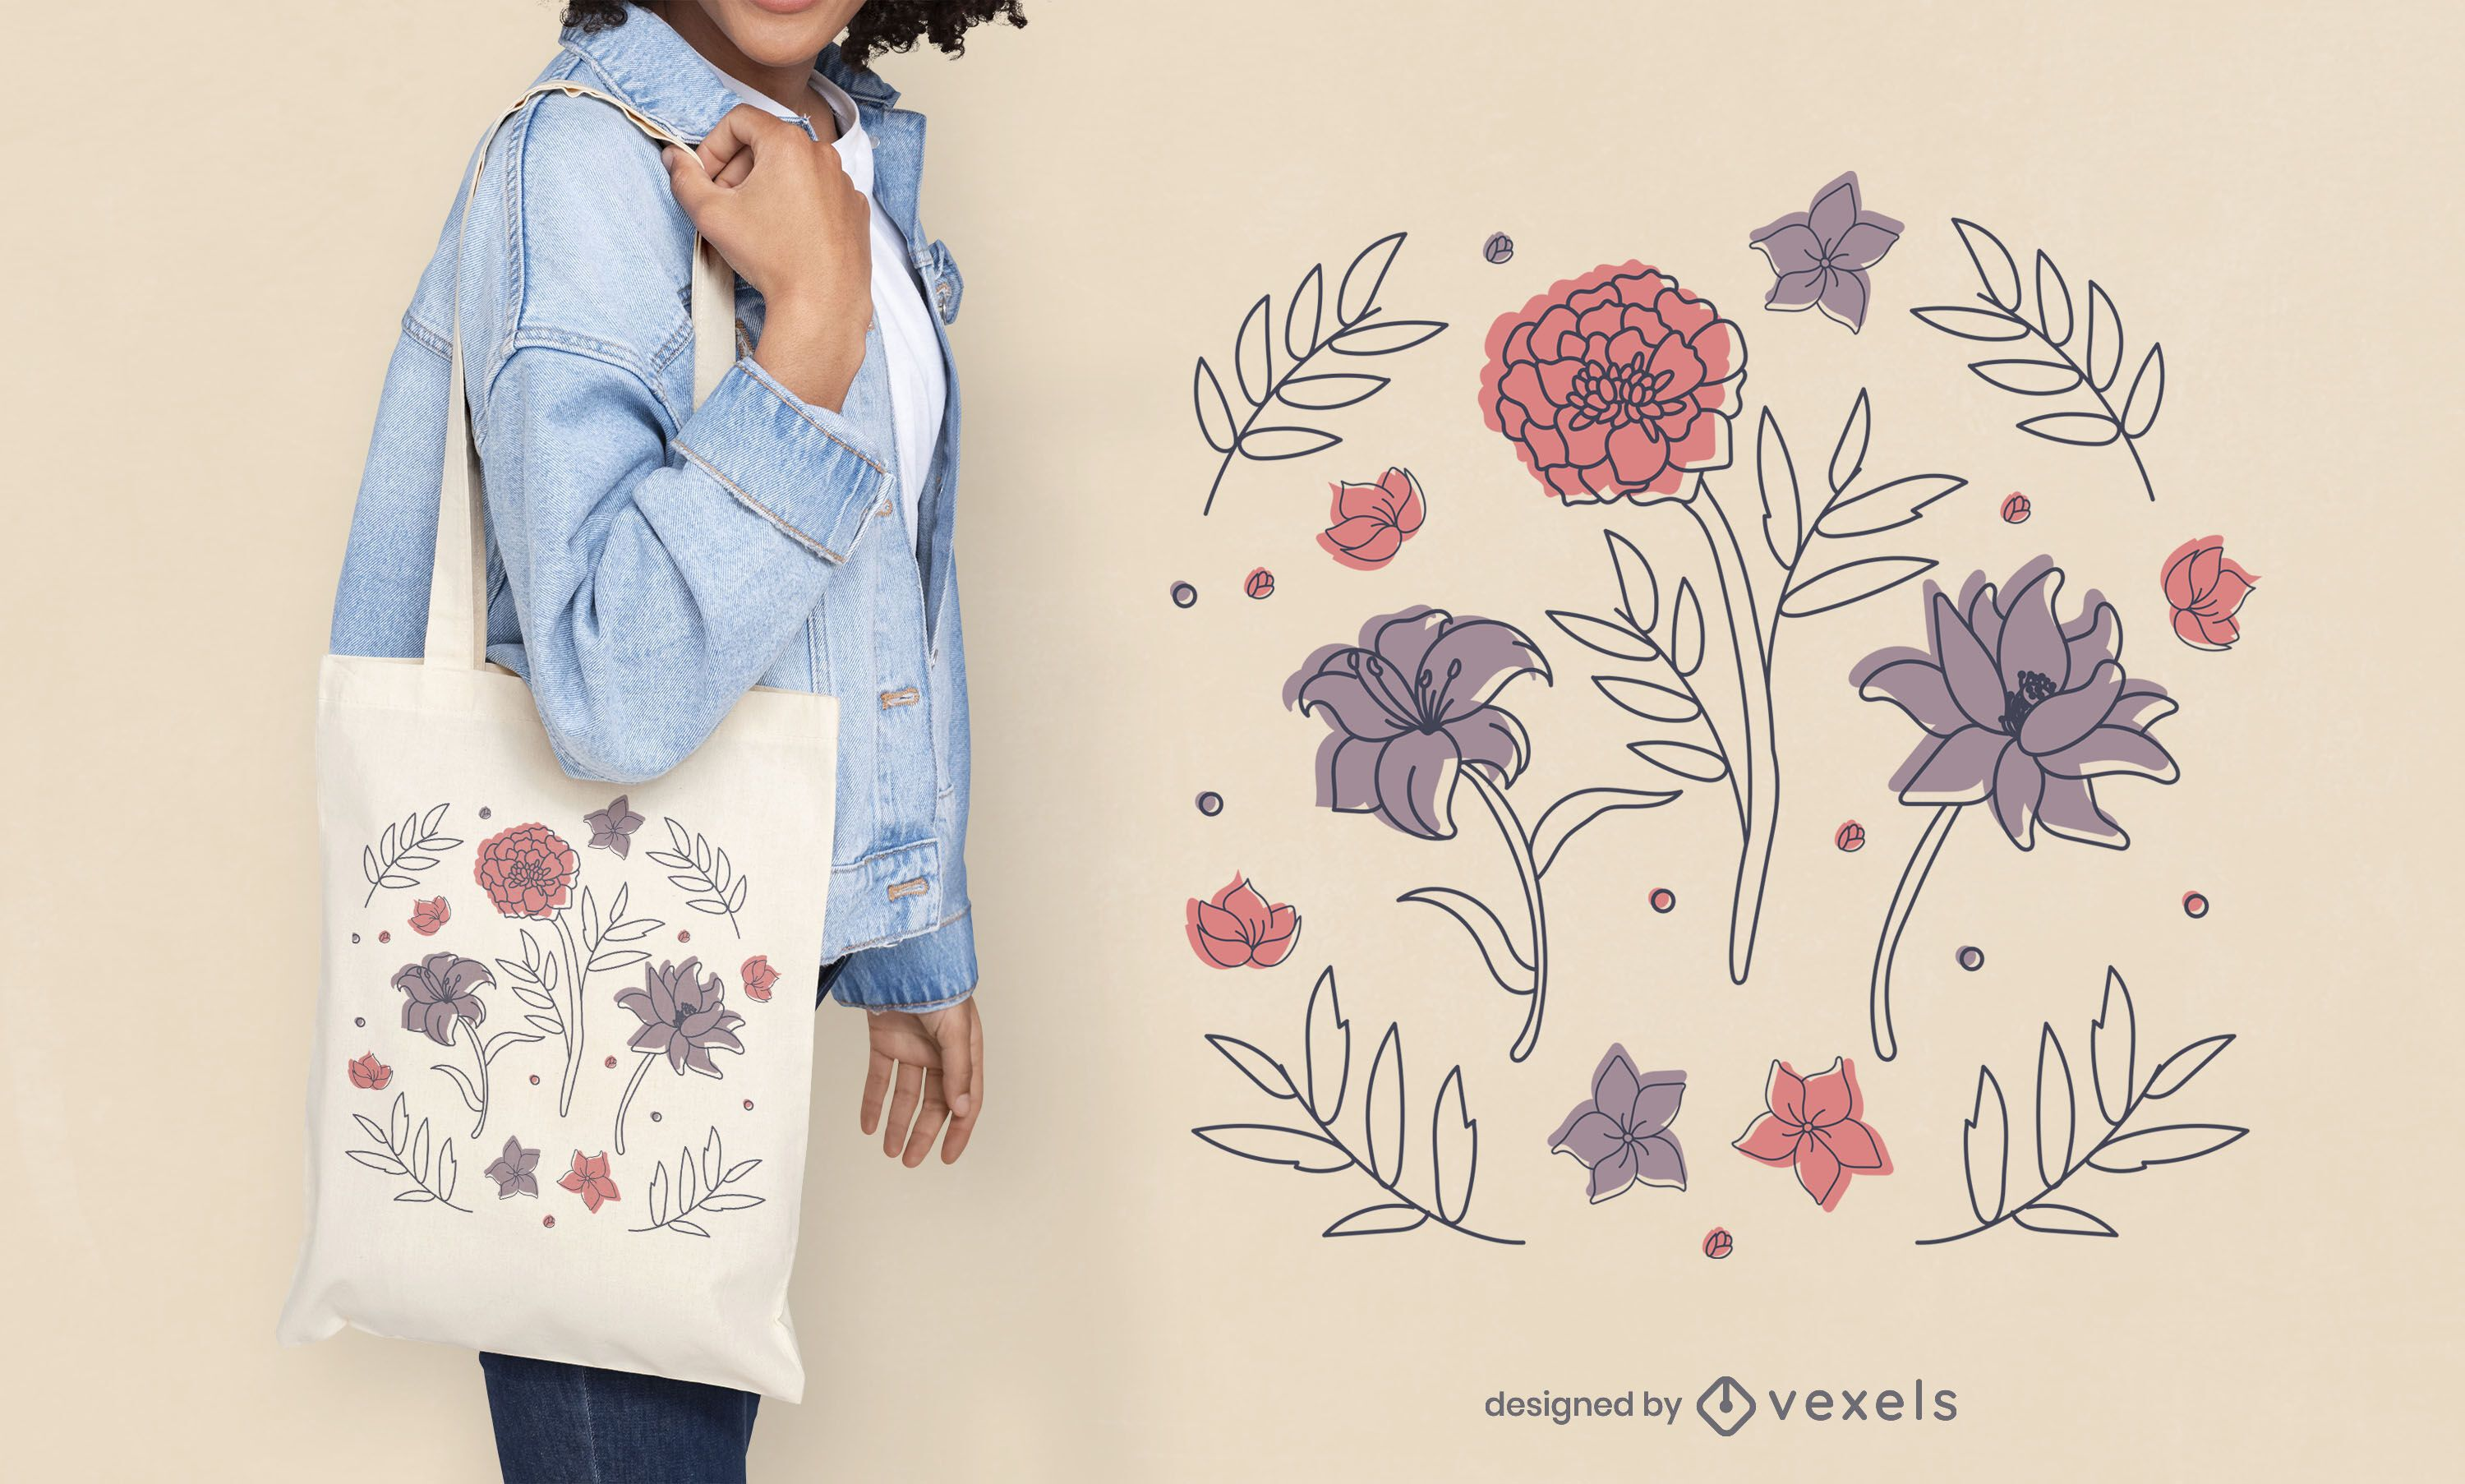 Flowers and ornaments color stroke tote bag design